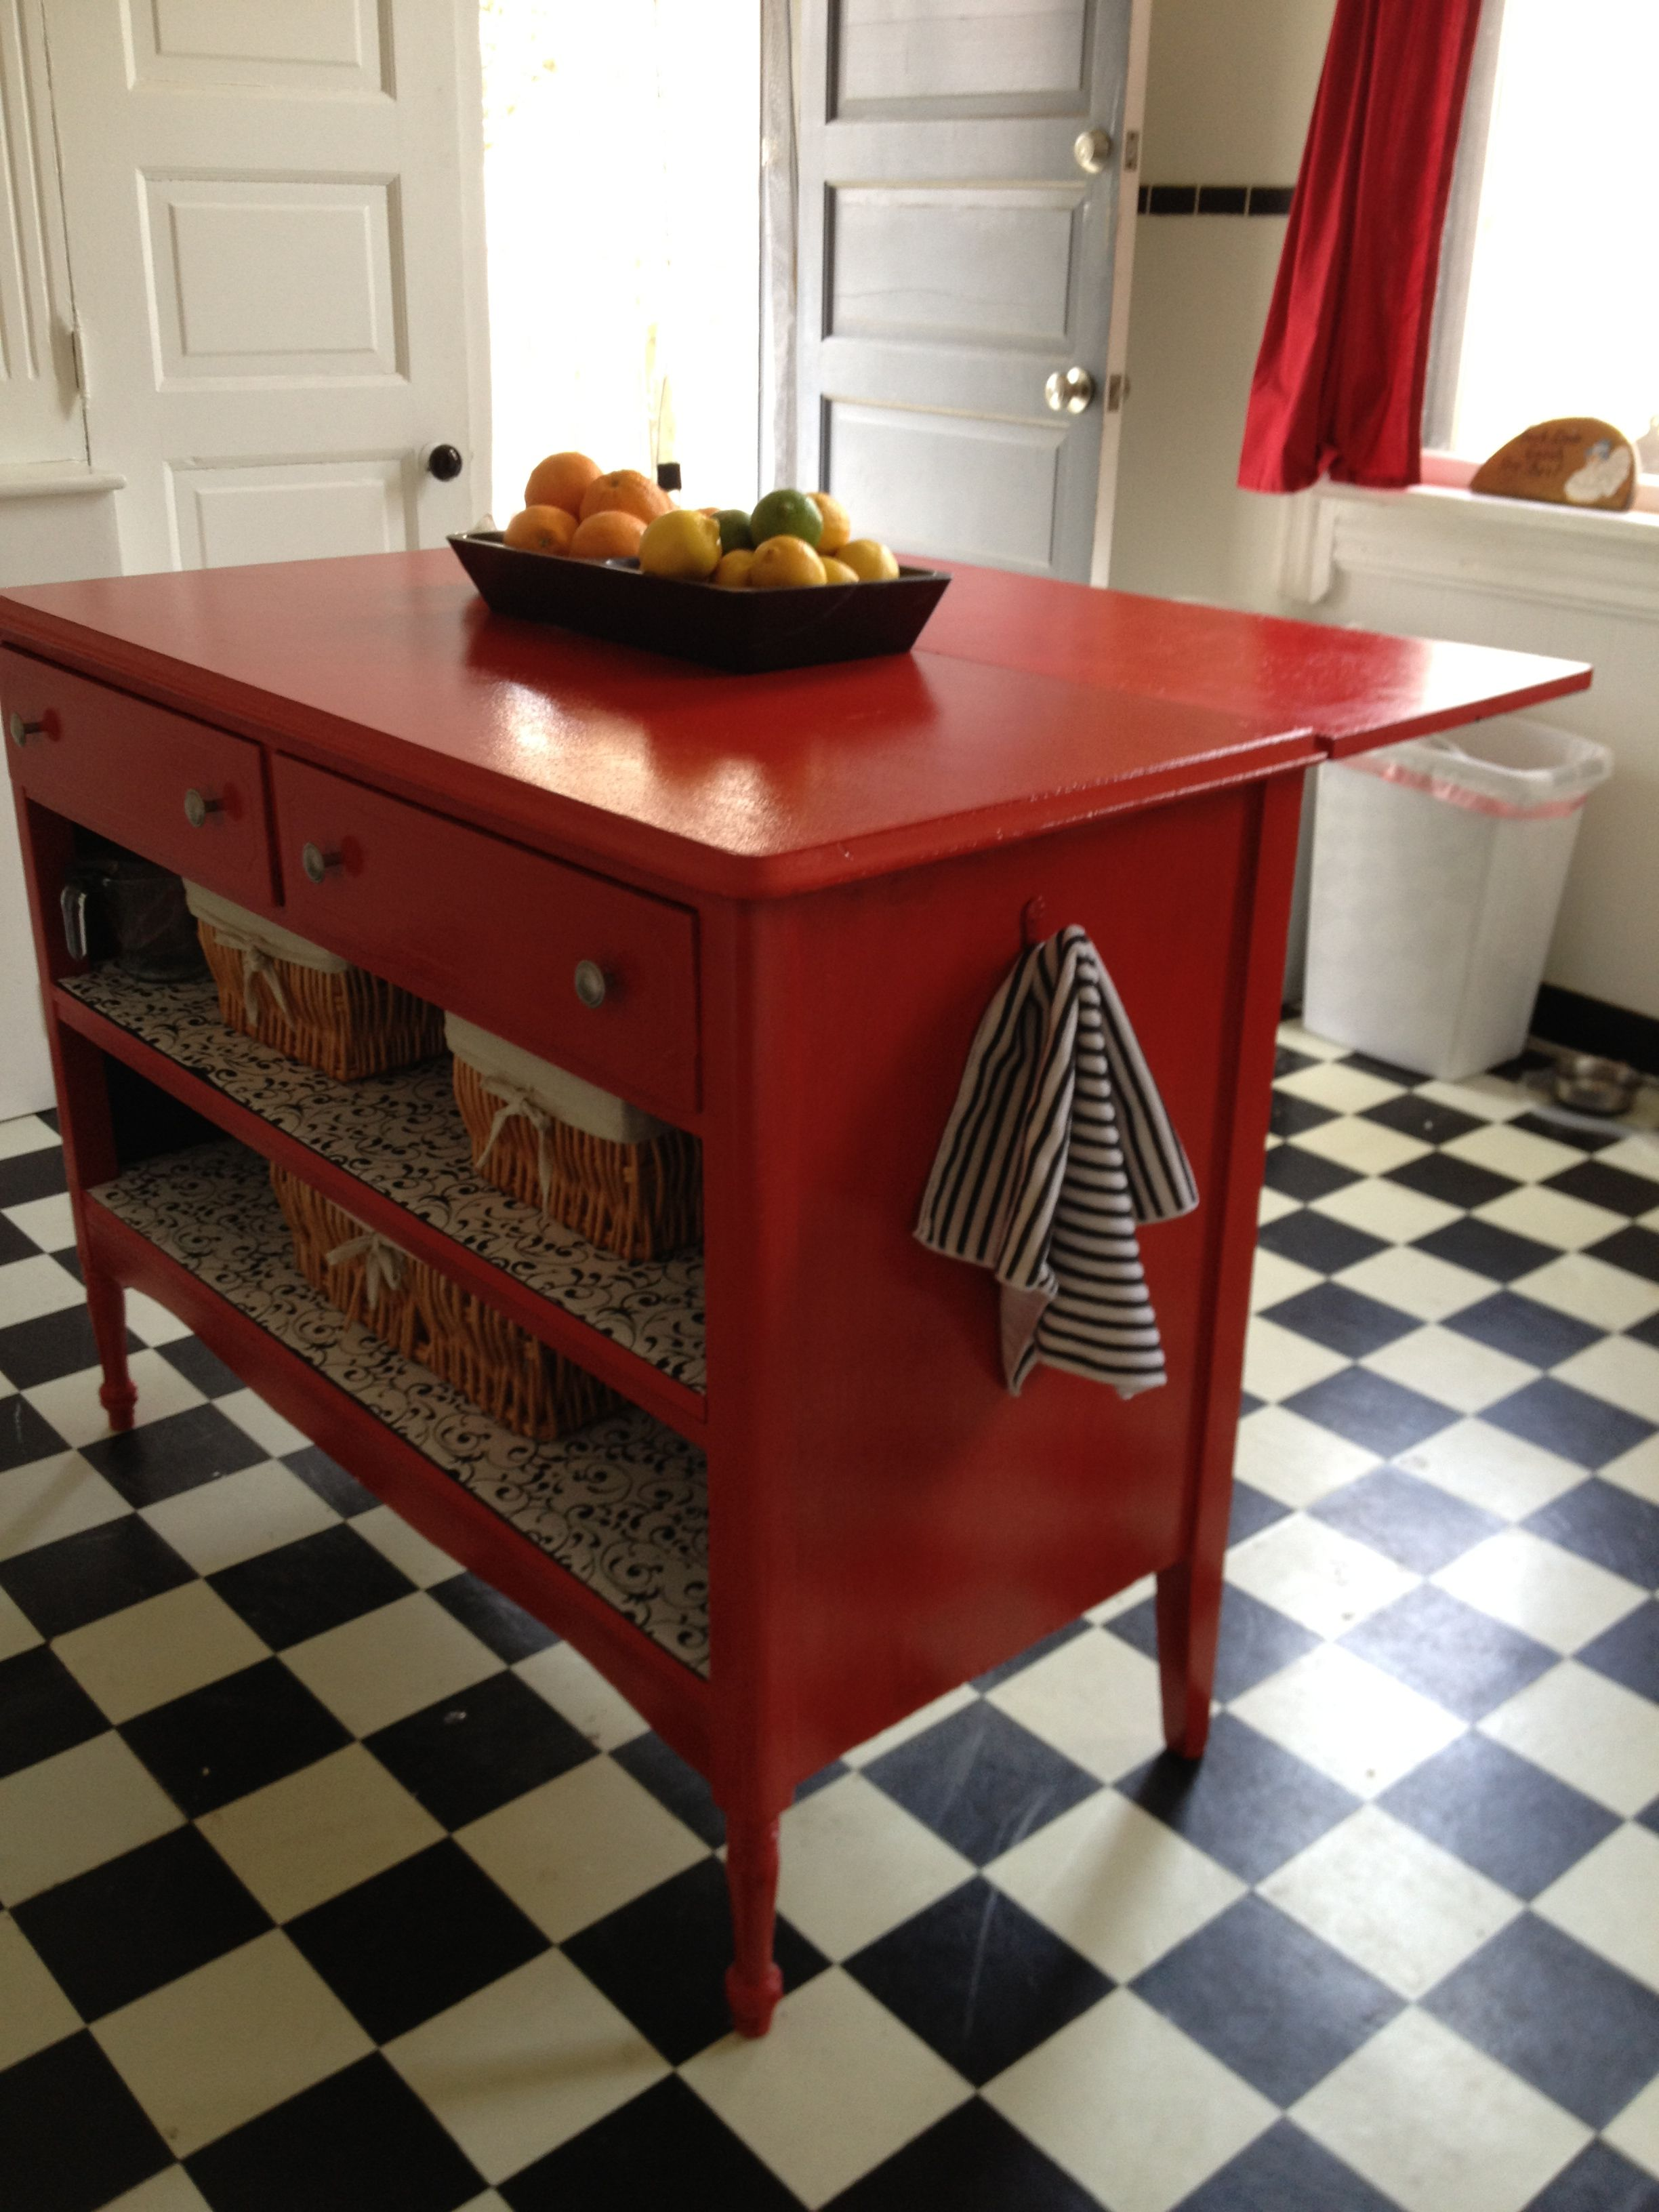 turned an old dresser into a kitchen island. added a leaf by using